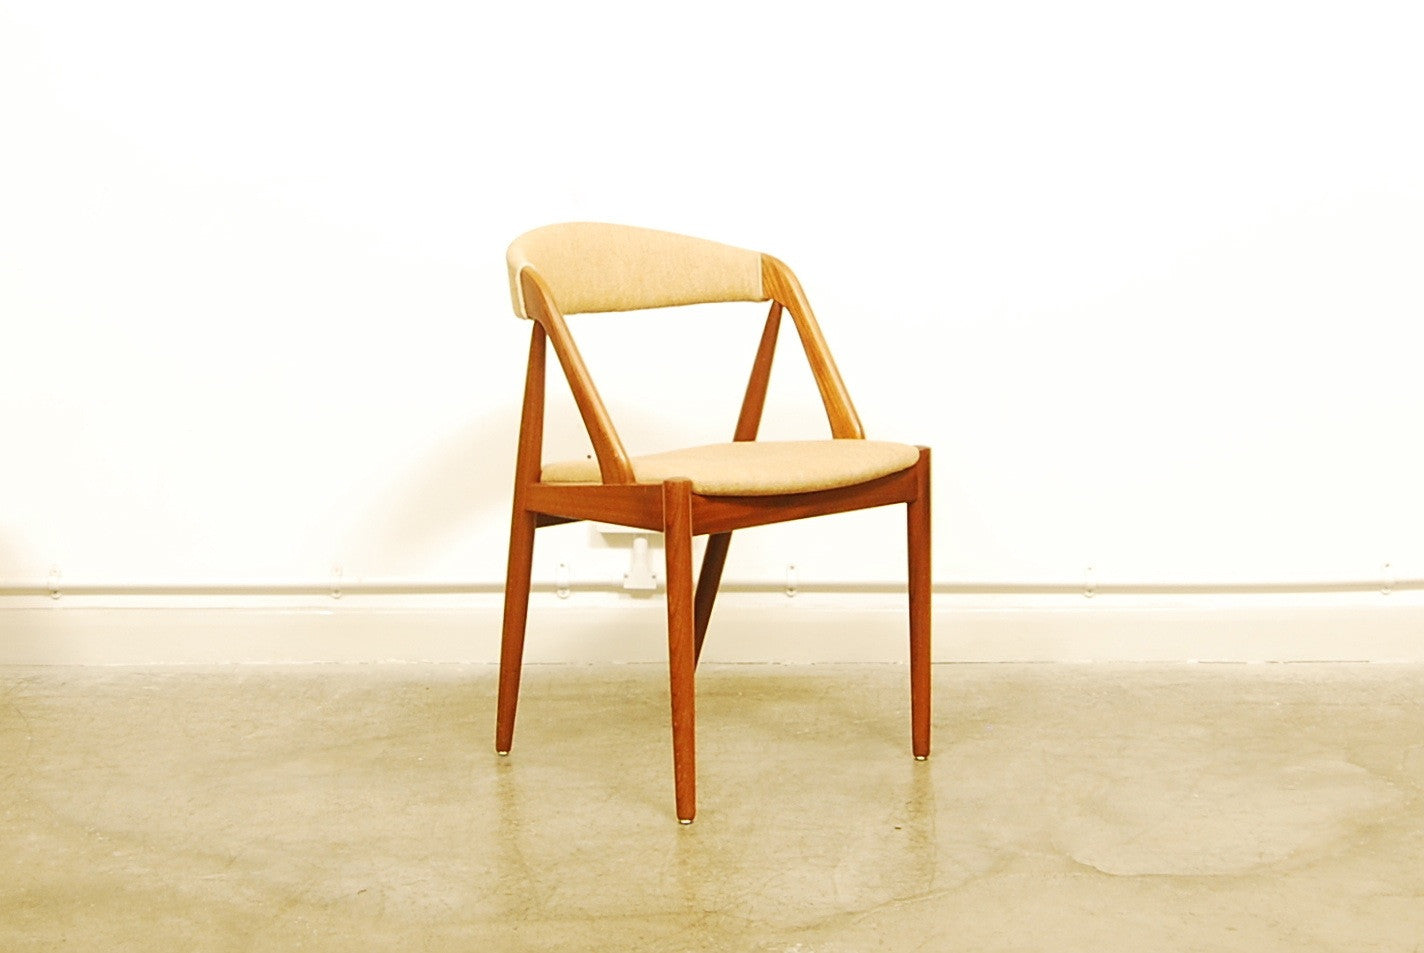 Dining chairs by Kai Kristiansen